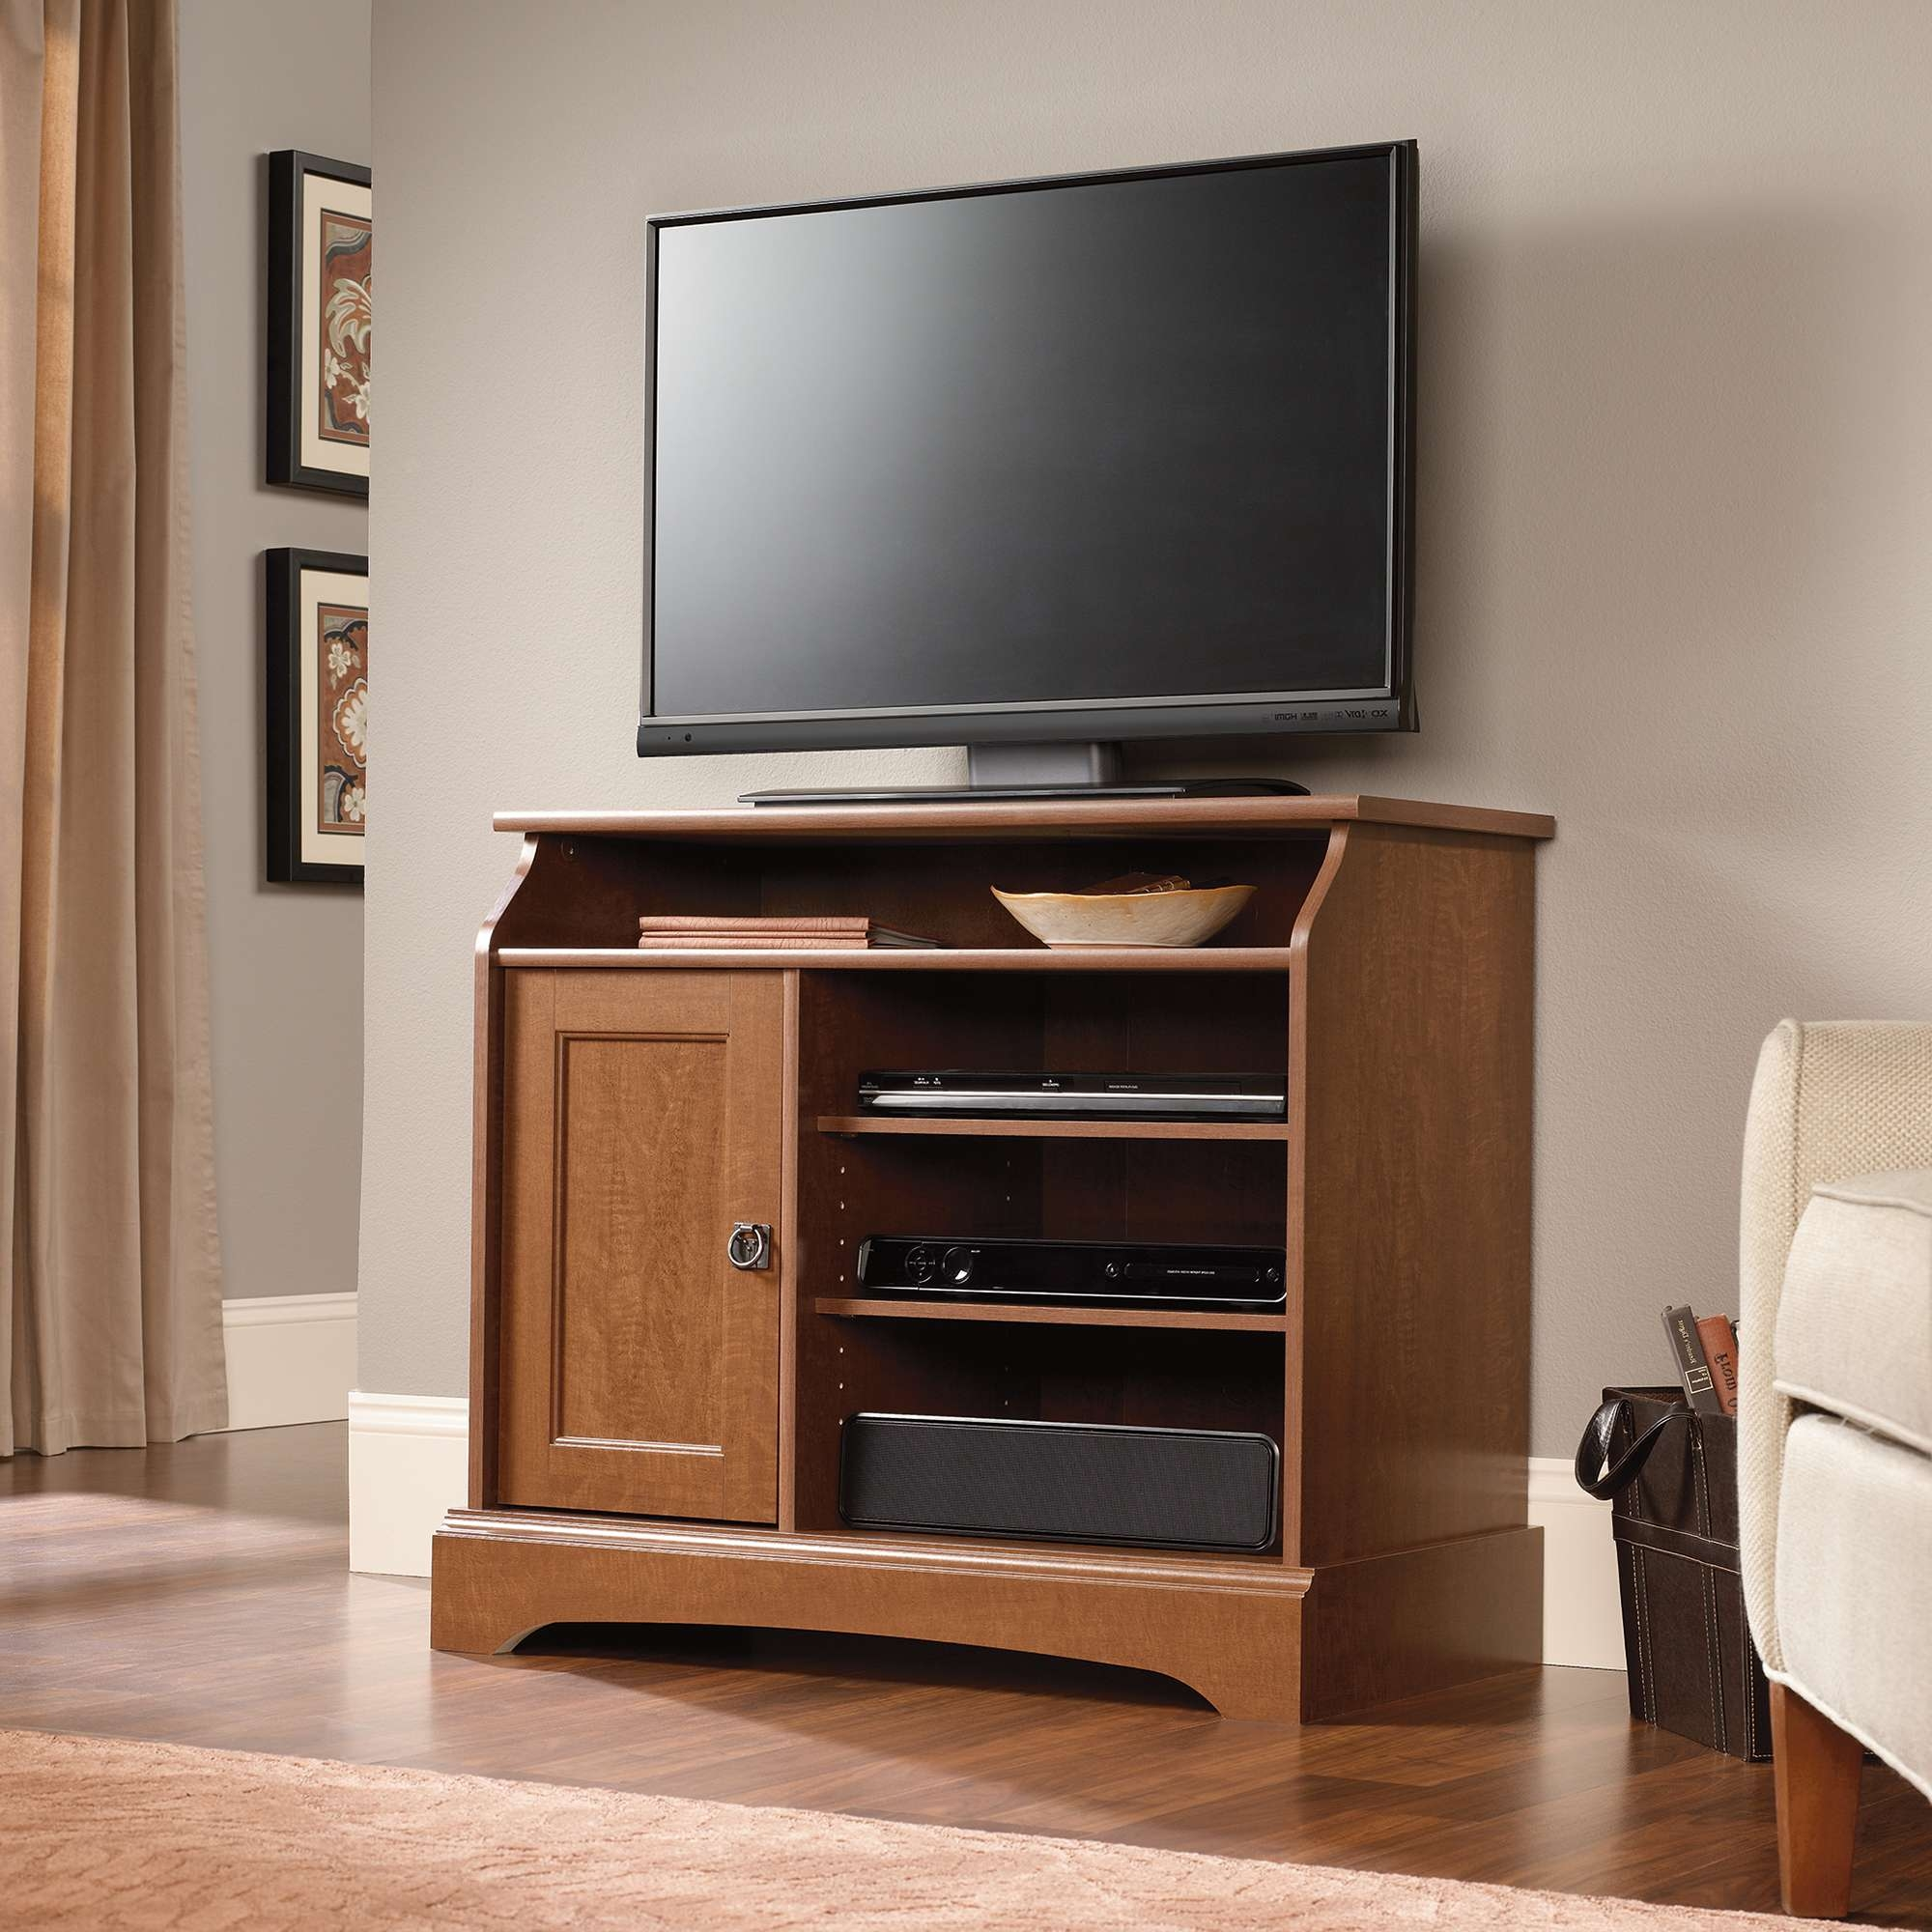 Sauder Select | Highboy Tv Stand | 408972 | Sauder Throughout Maple Wood Tv Stands (View 14 of 15)